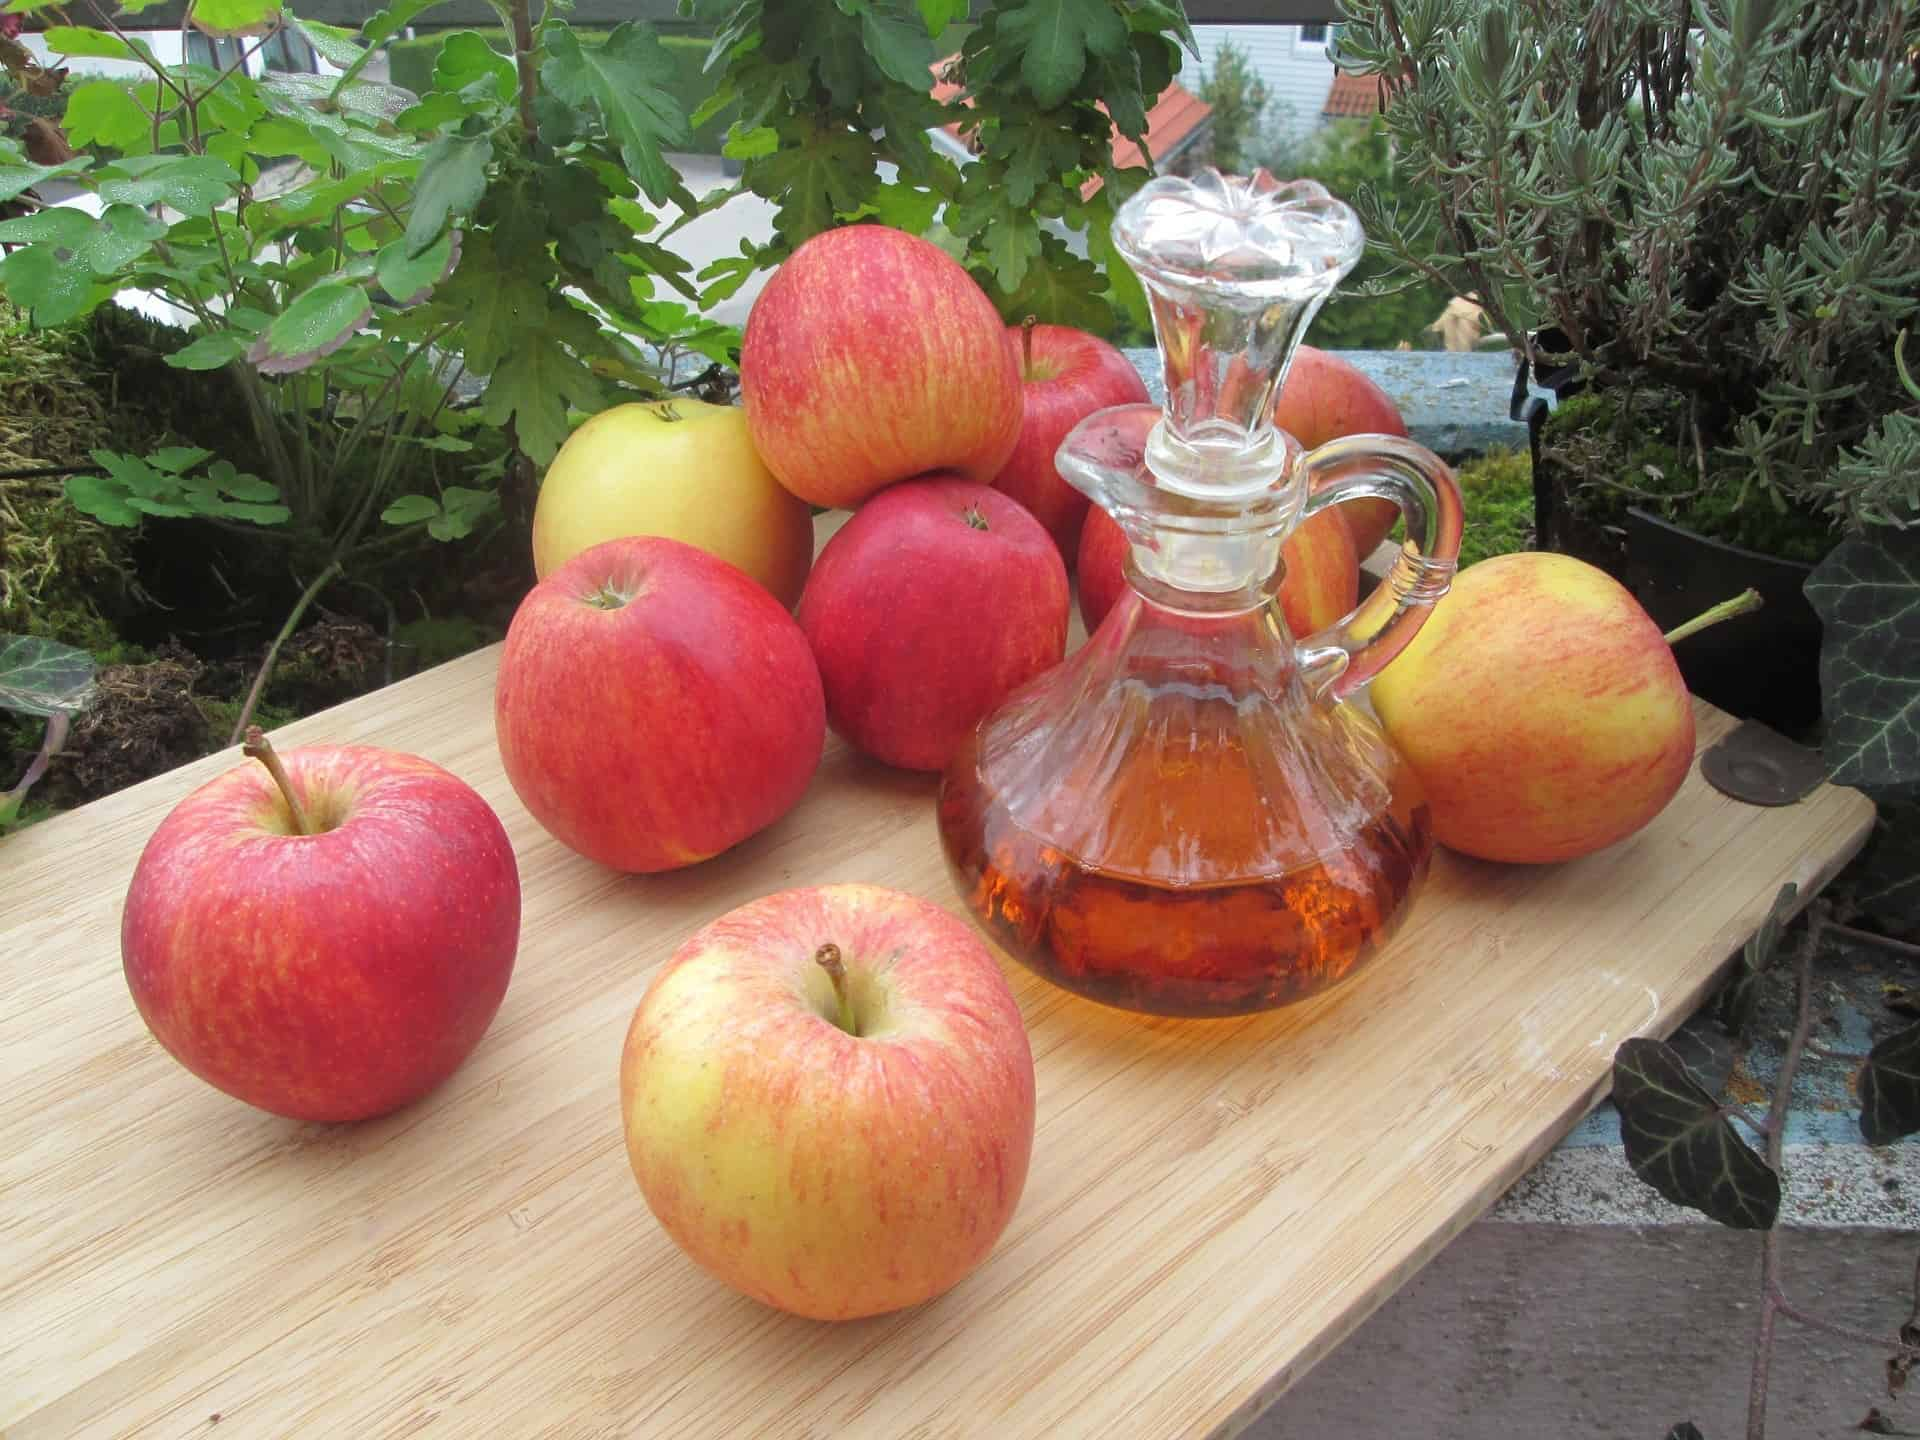 Apple Cider Vinegar can help your eating habits